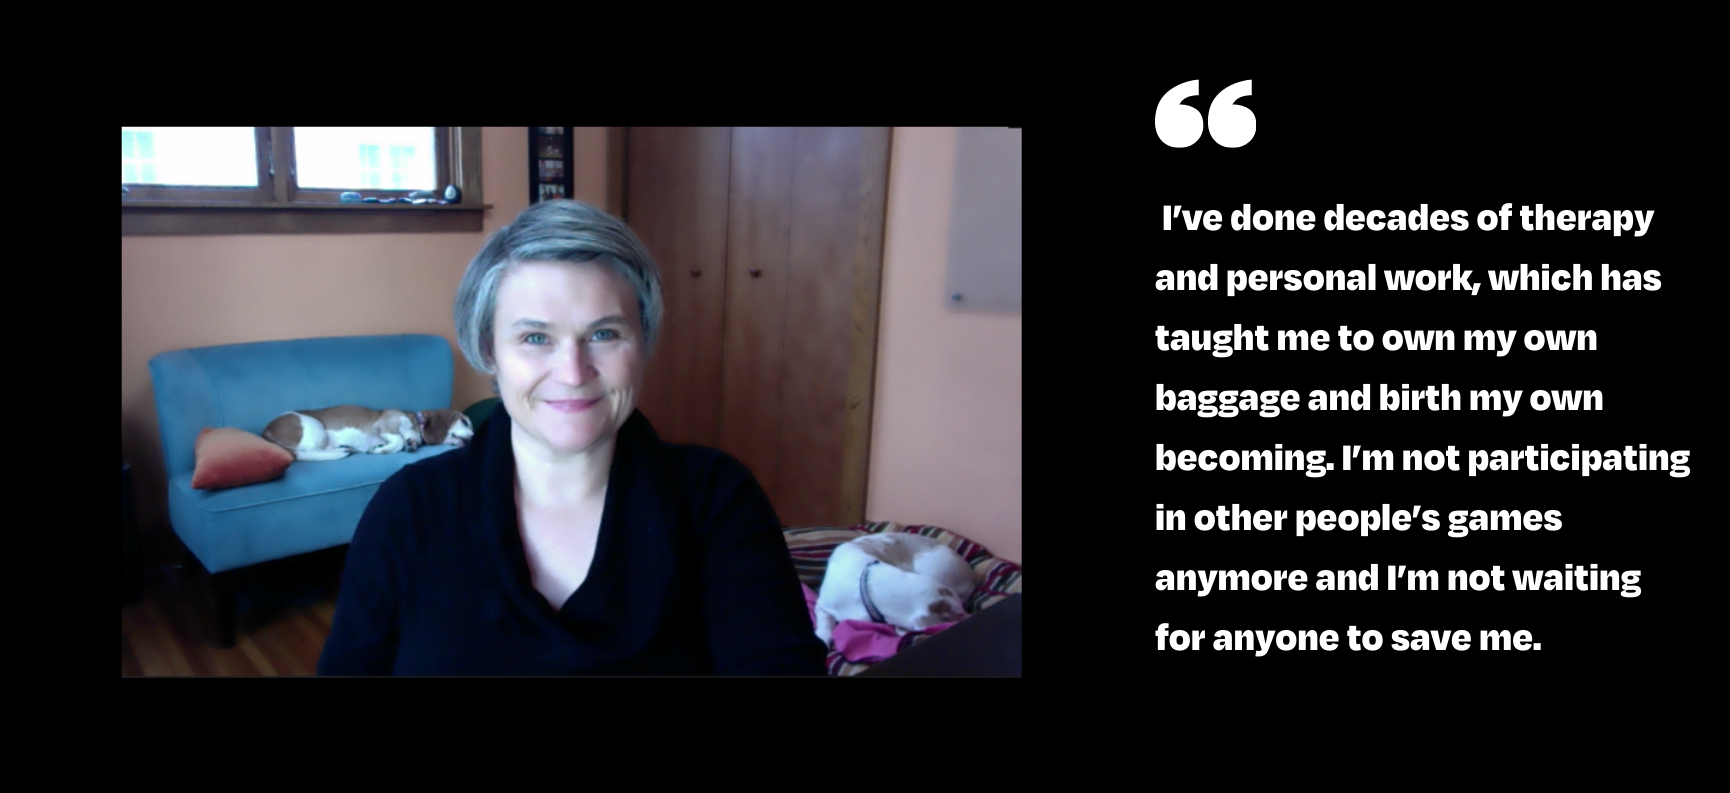 """Jen Kane photo and quote: """"I've done decades of therapy and personal work, which has taught me to own my own baggage and birth my own becoming. I'm not participating in other people's games anymore and I'm not waiting for anyone to save me."""""""